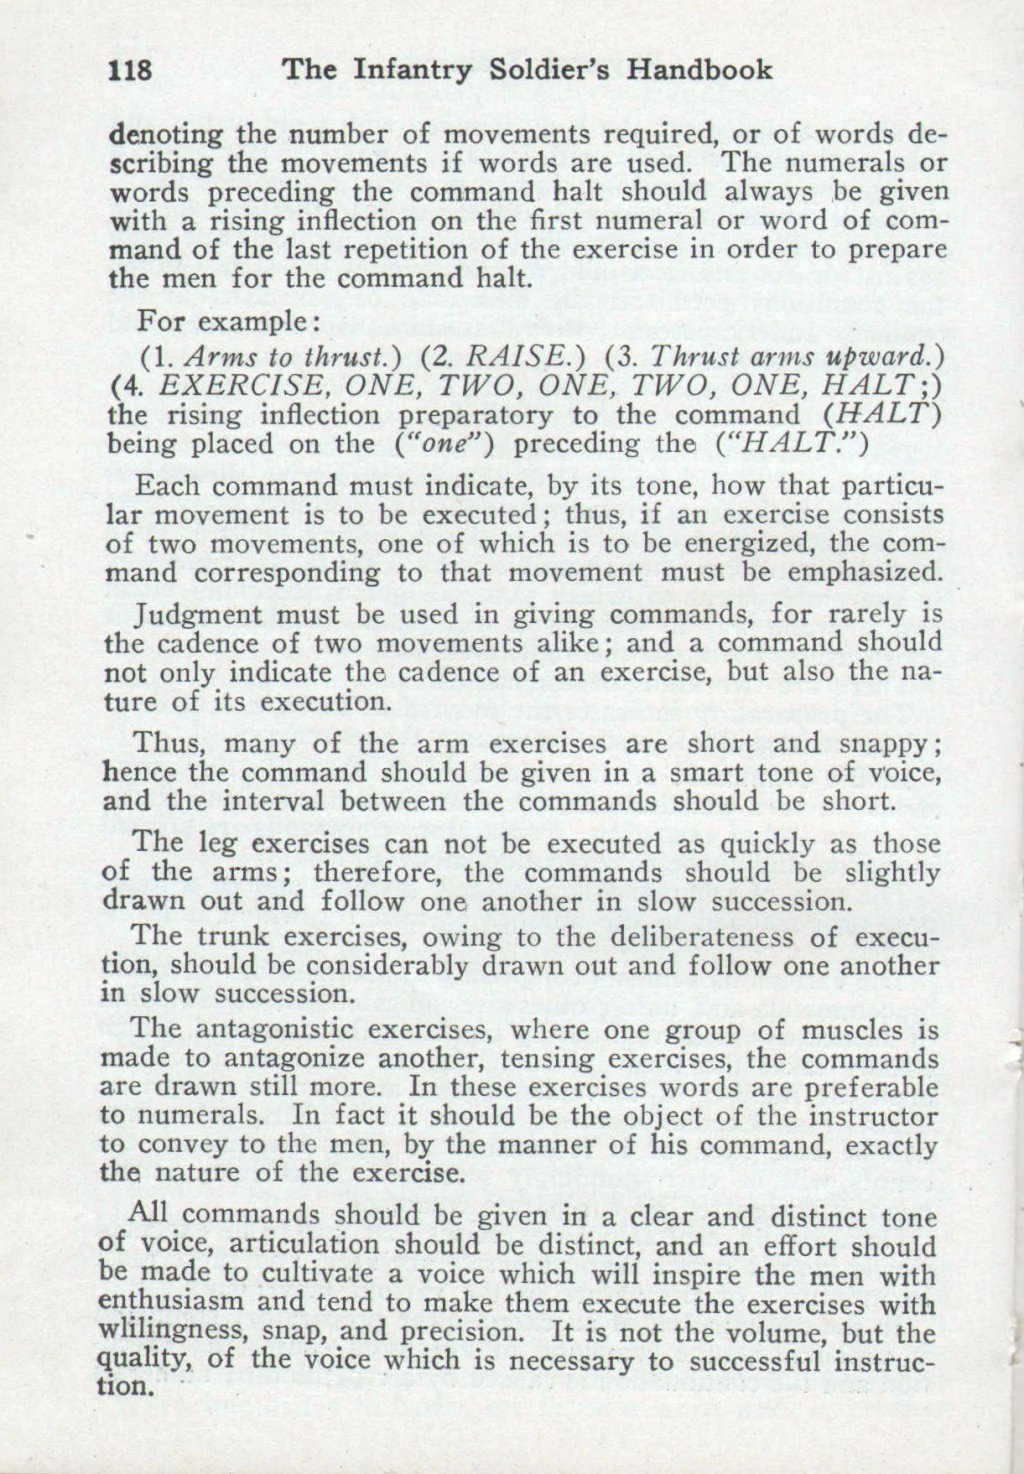 314th Infantry Regiment - Infantry Soldiers Handbook - Waldron - Page 118